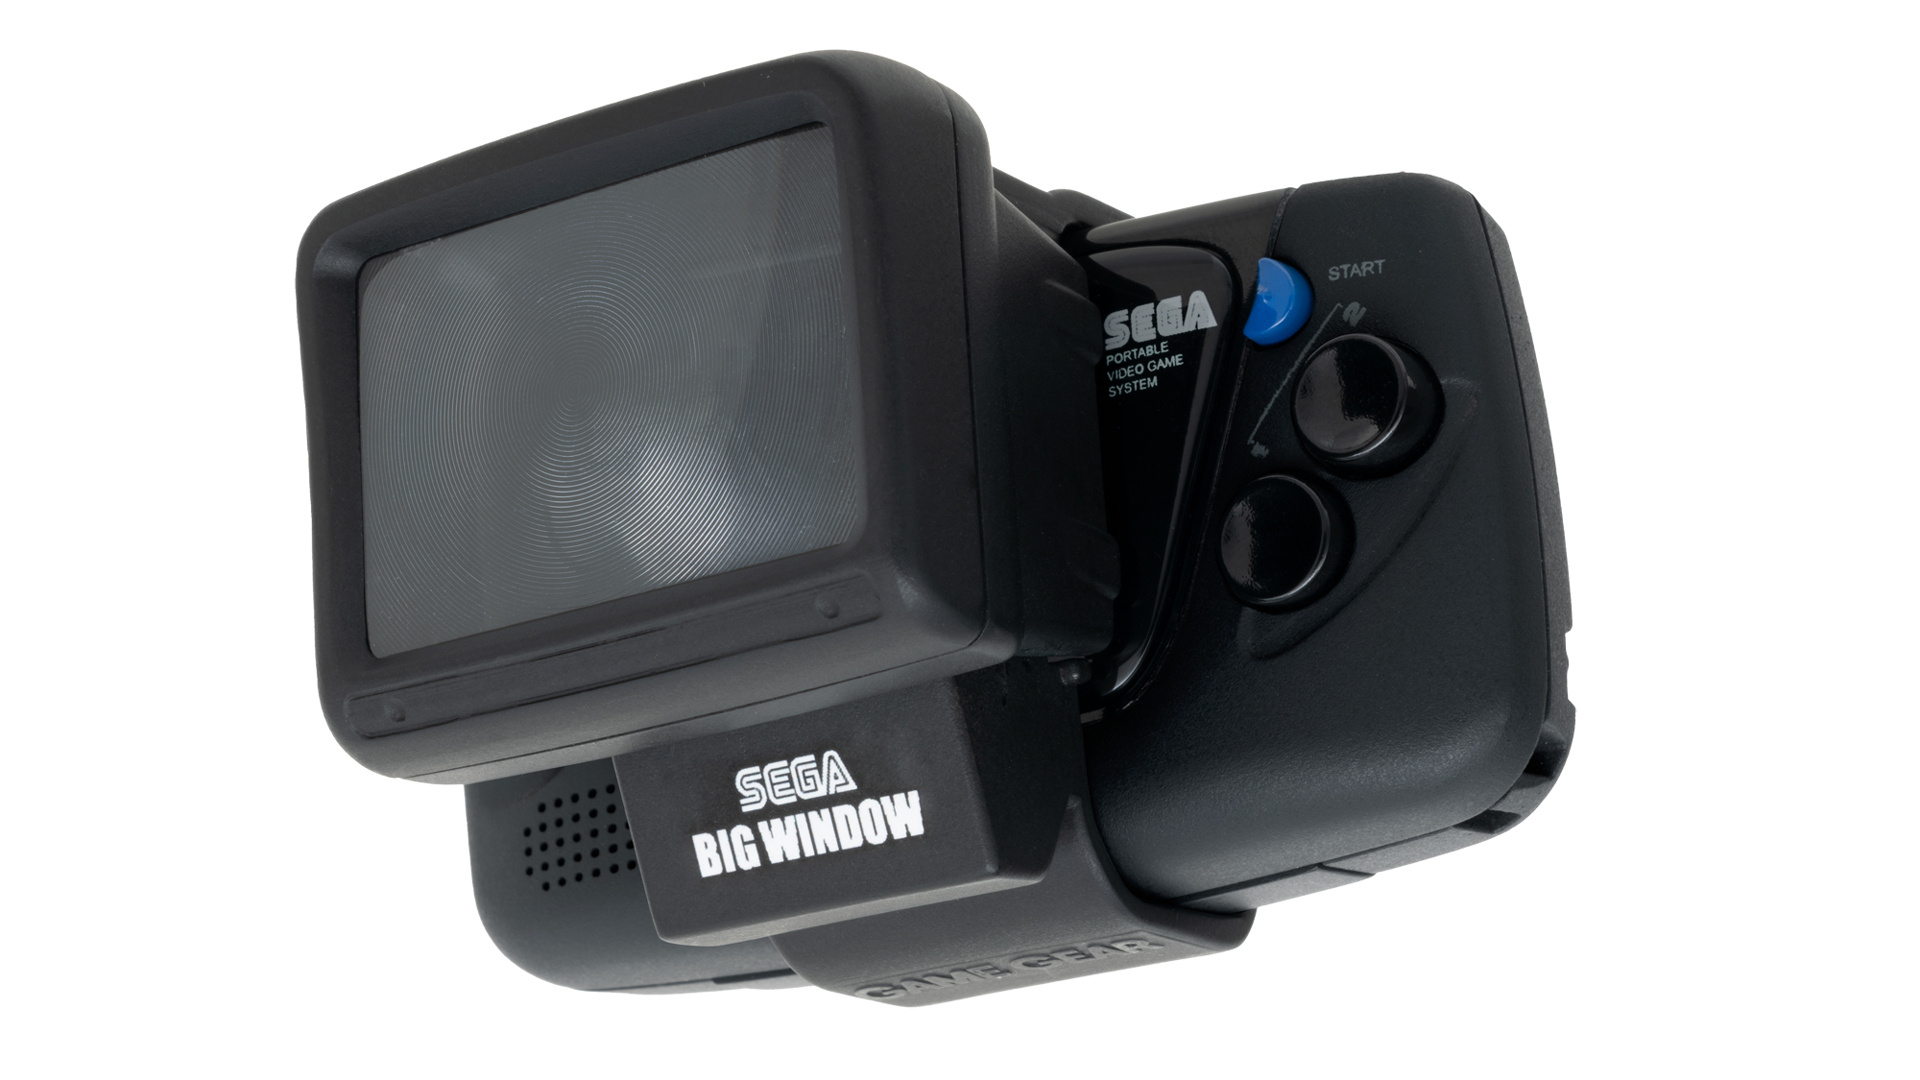 Gearing up for Game Gear Micro Sega-big-window-micro.original